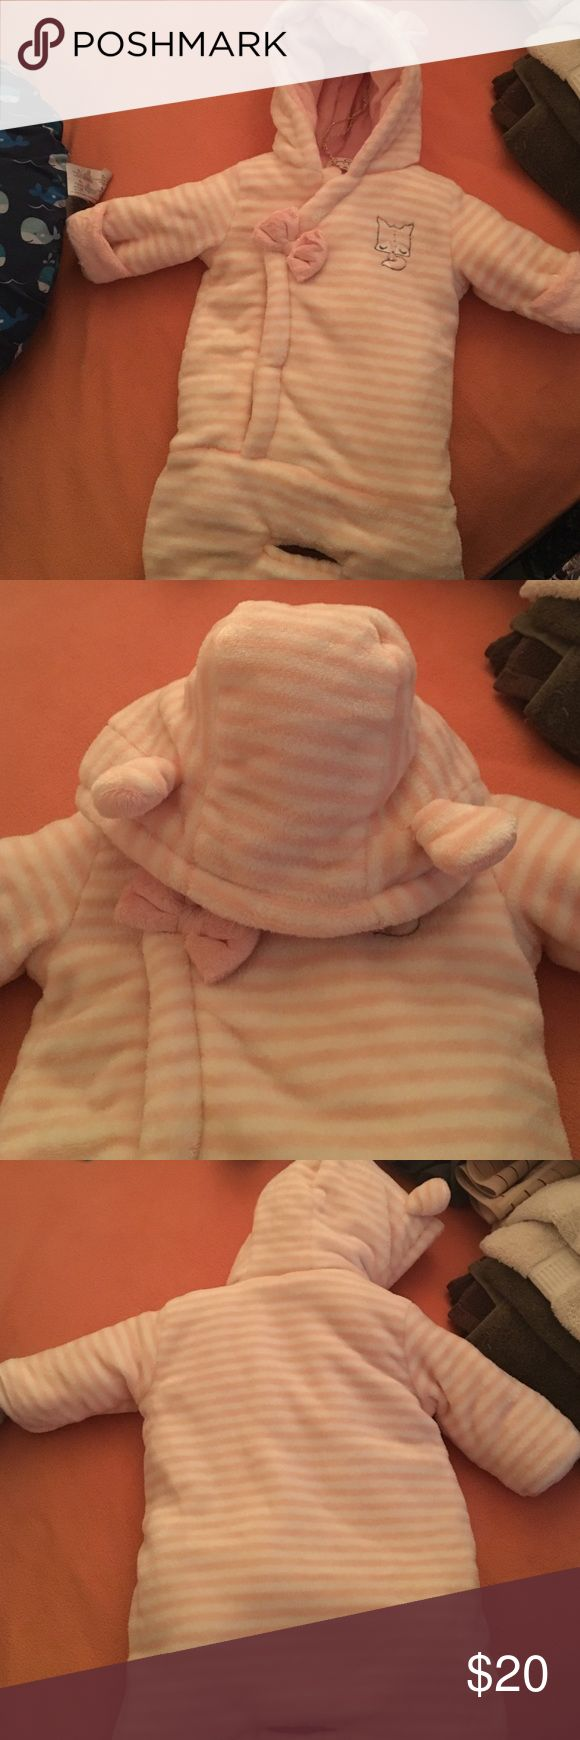 Jessica's Simpson's infant's coat This coat is perfect for winter and great for the car seat. Very soft, has a hood and able to cover hands. Snaps in the front. This is best for smaller babies like 2-6 months old. Jessica Simpson Jackets & Coats